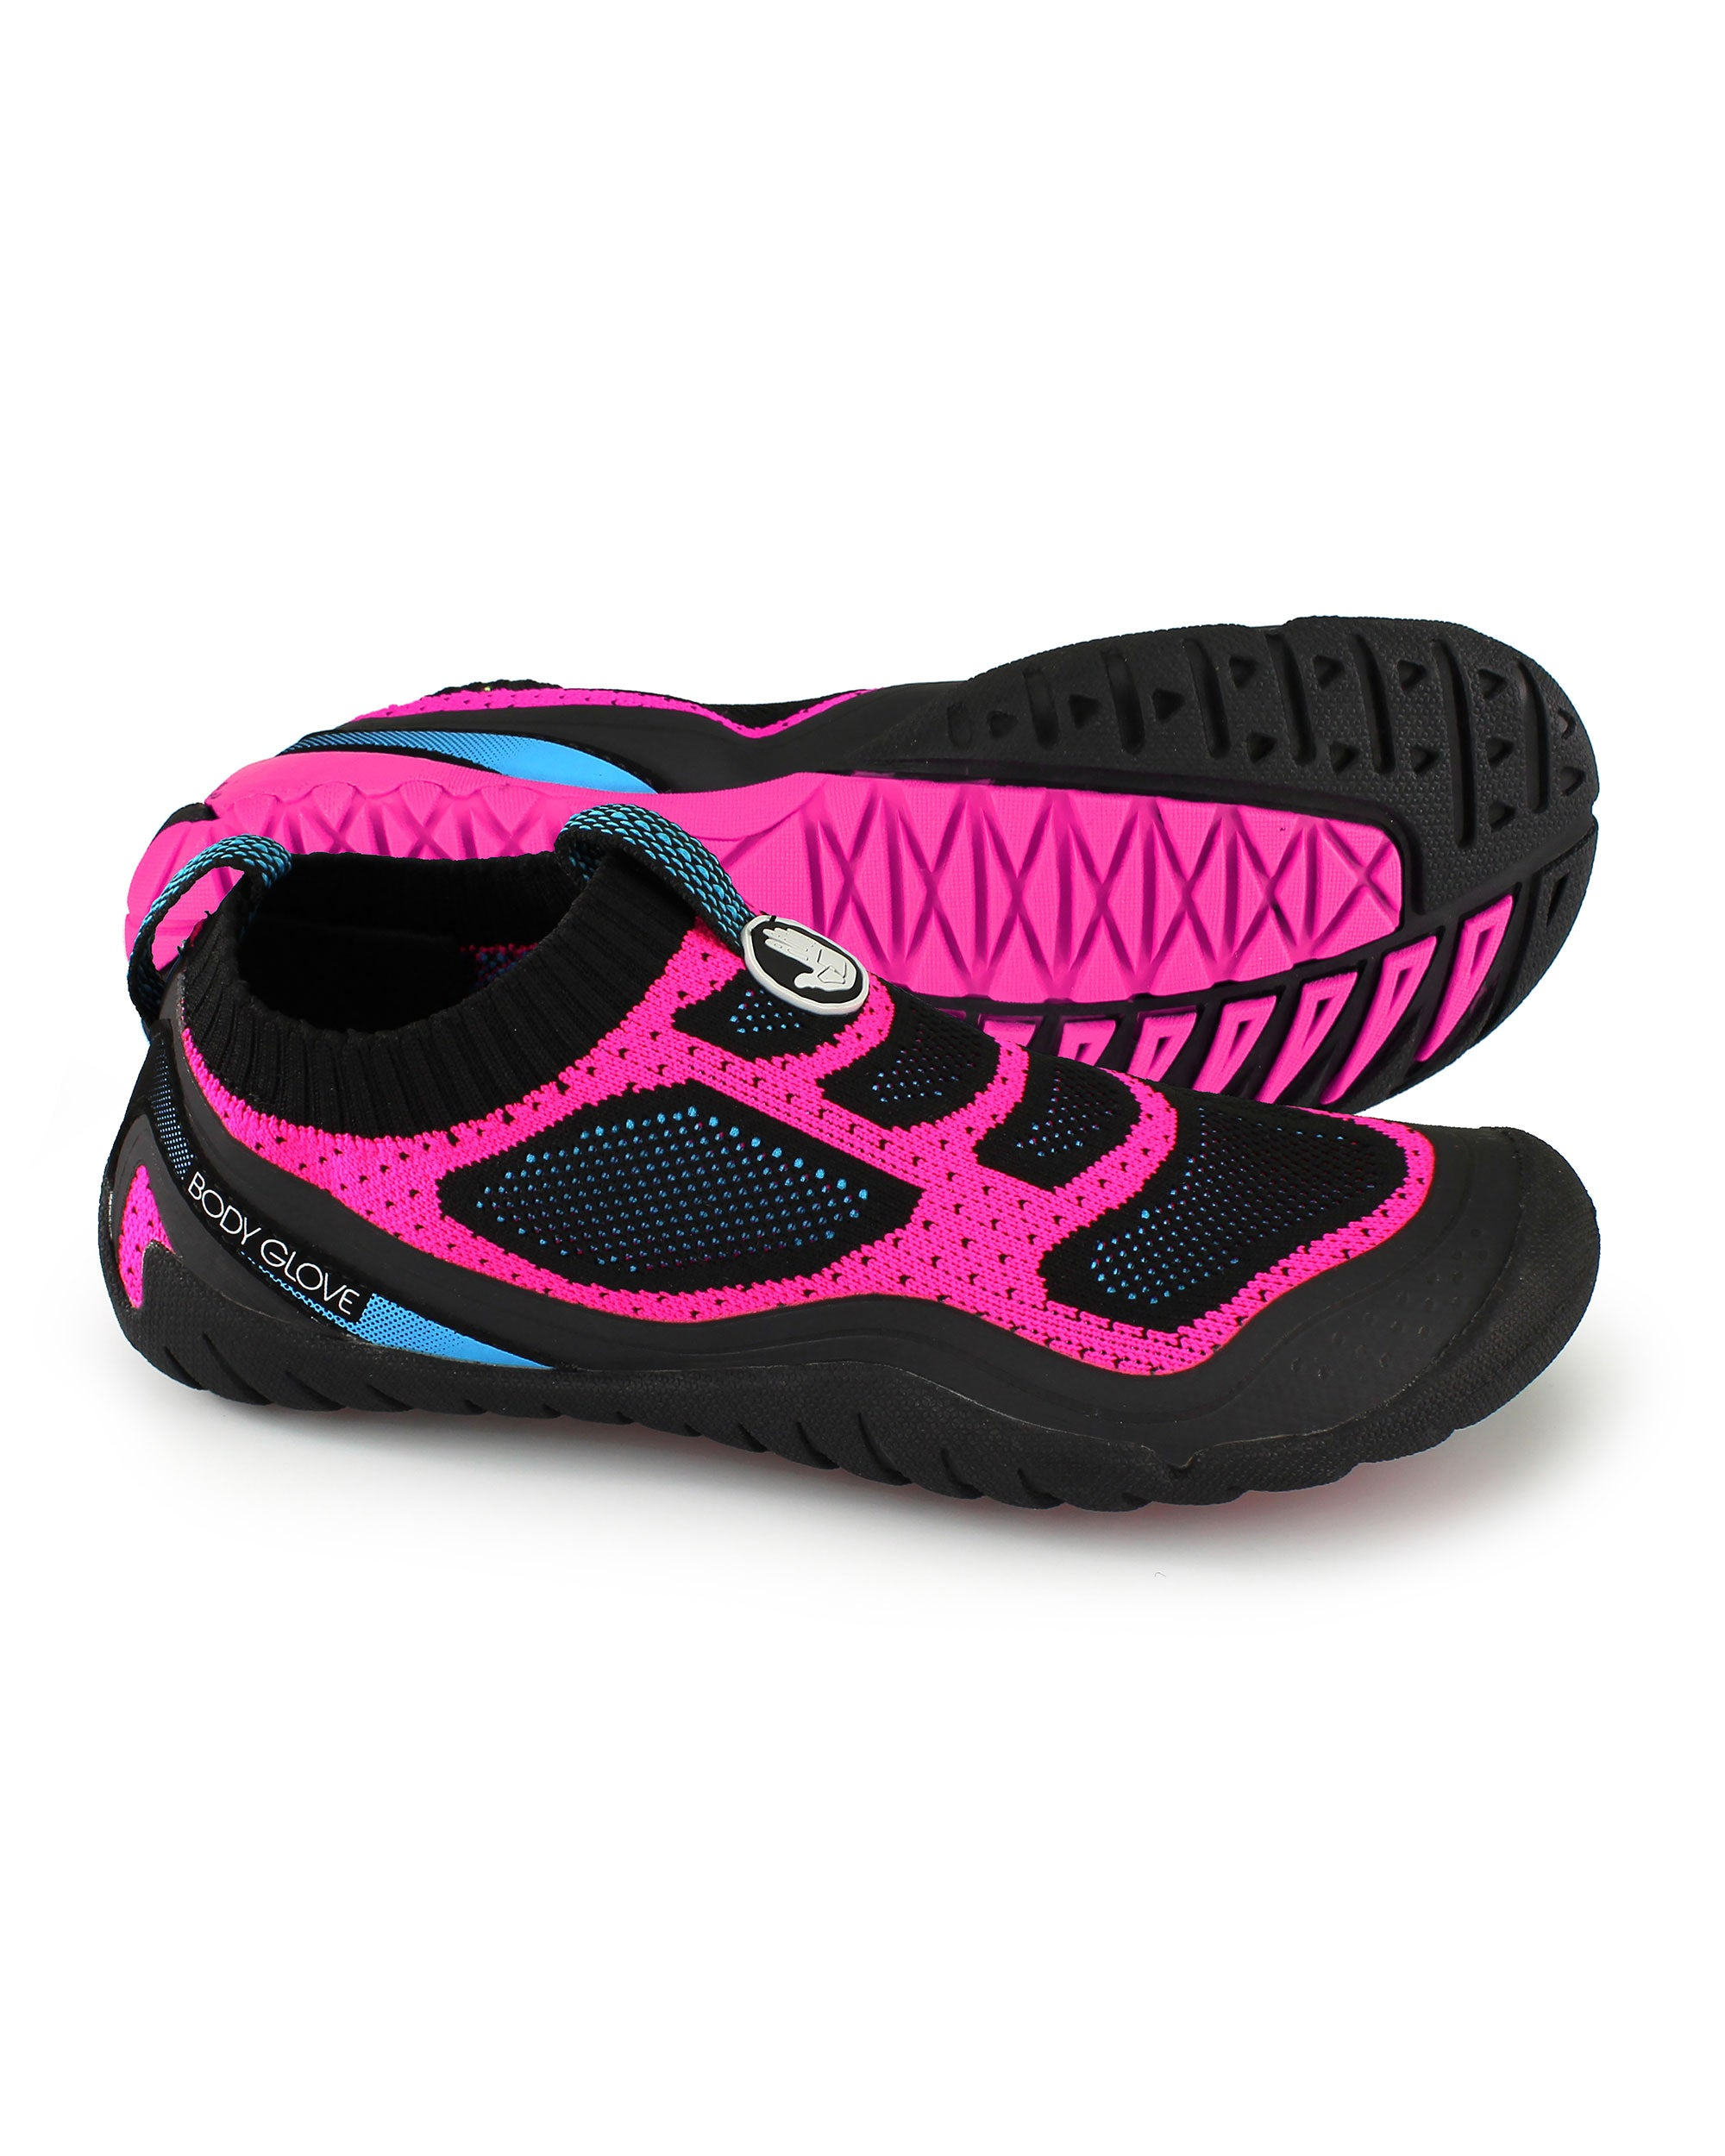 baf1a04554c Women's Aeon Water Shoes - Neon Pink/Neon Blue. Tap to Expand. Hover or  Click to Enlarge